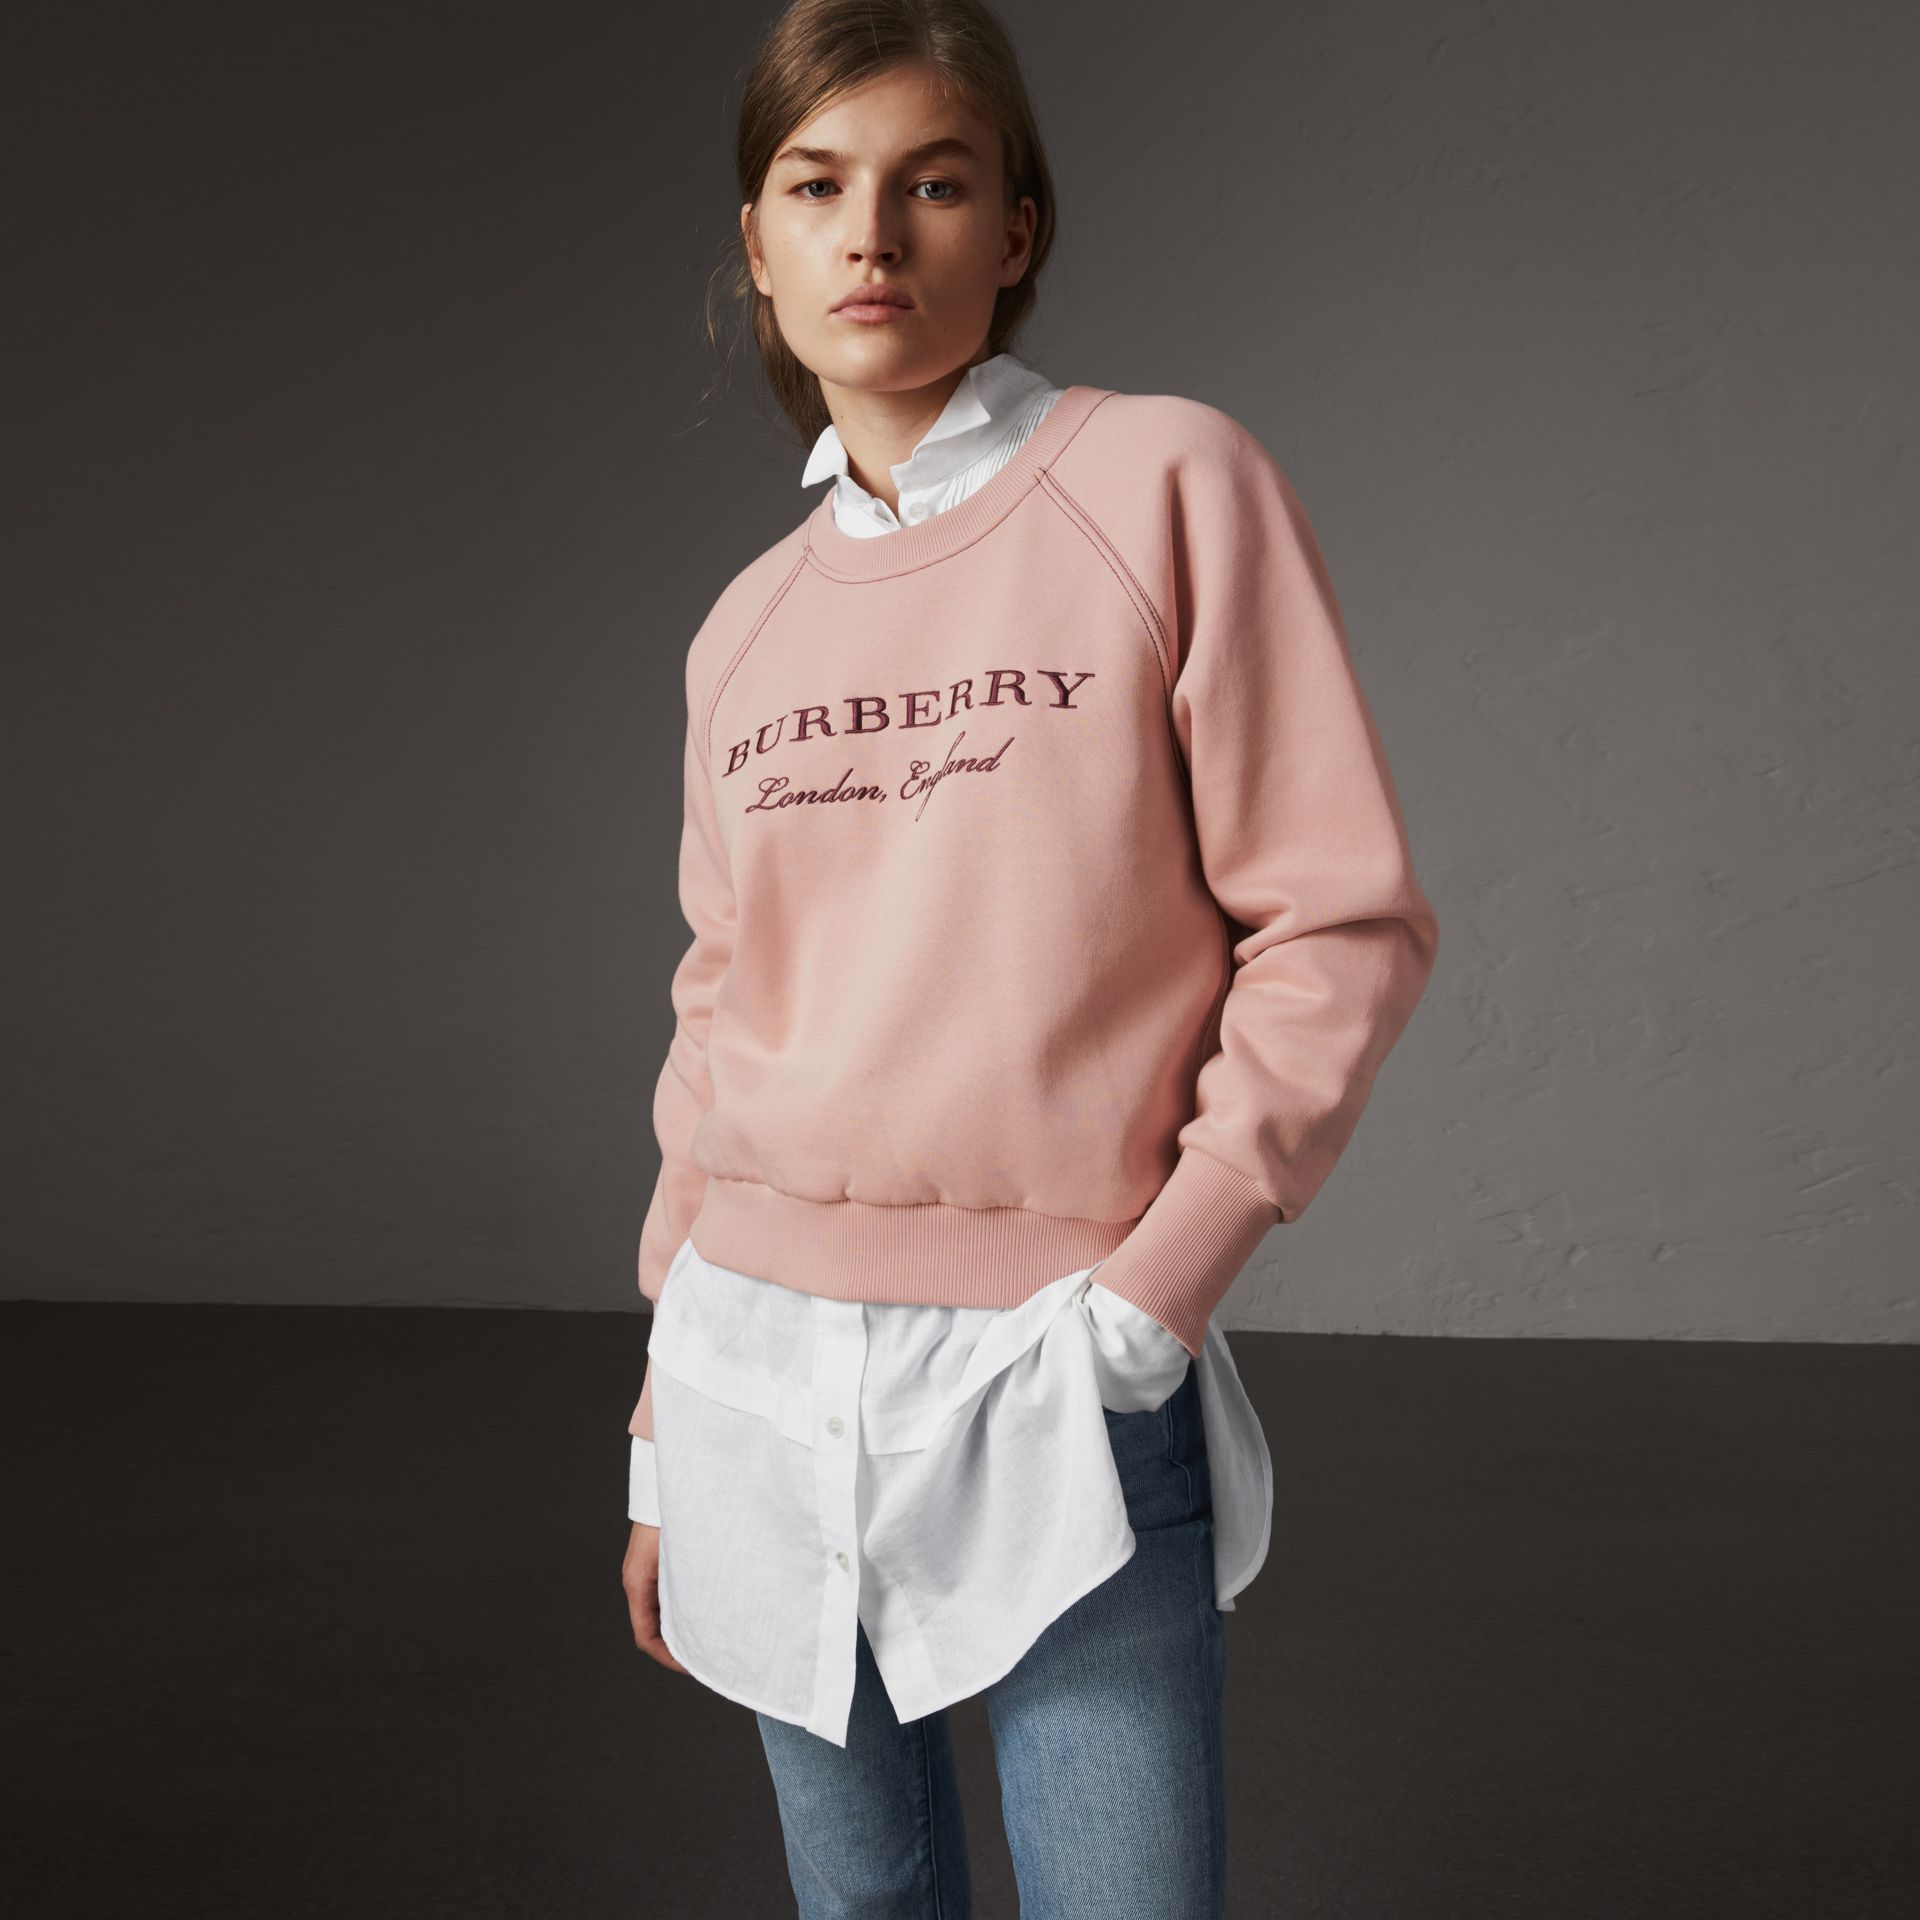 Embroidered Cotton Blend Jersey Sweatshirt in Ash Rose - Women | Burberry United States - gallery image 0